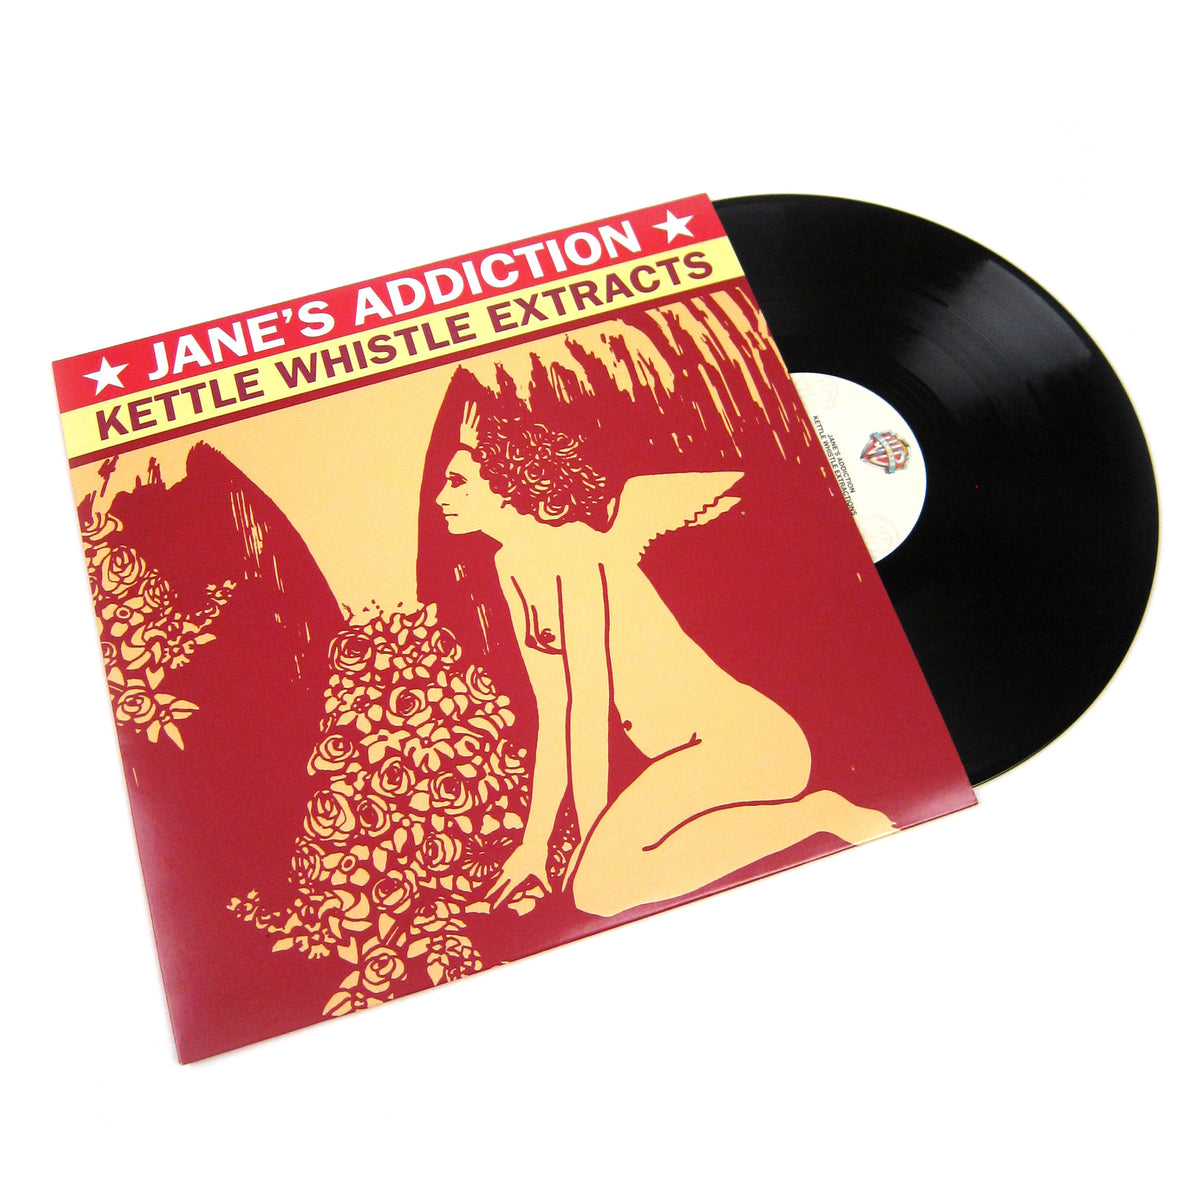 Jane's Addiction: Sterling Spoon (180g) Vinyl 6LP Boxset